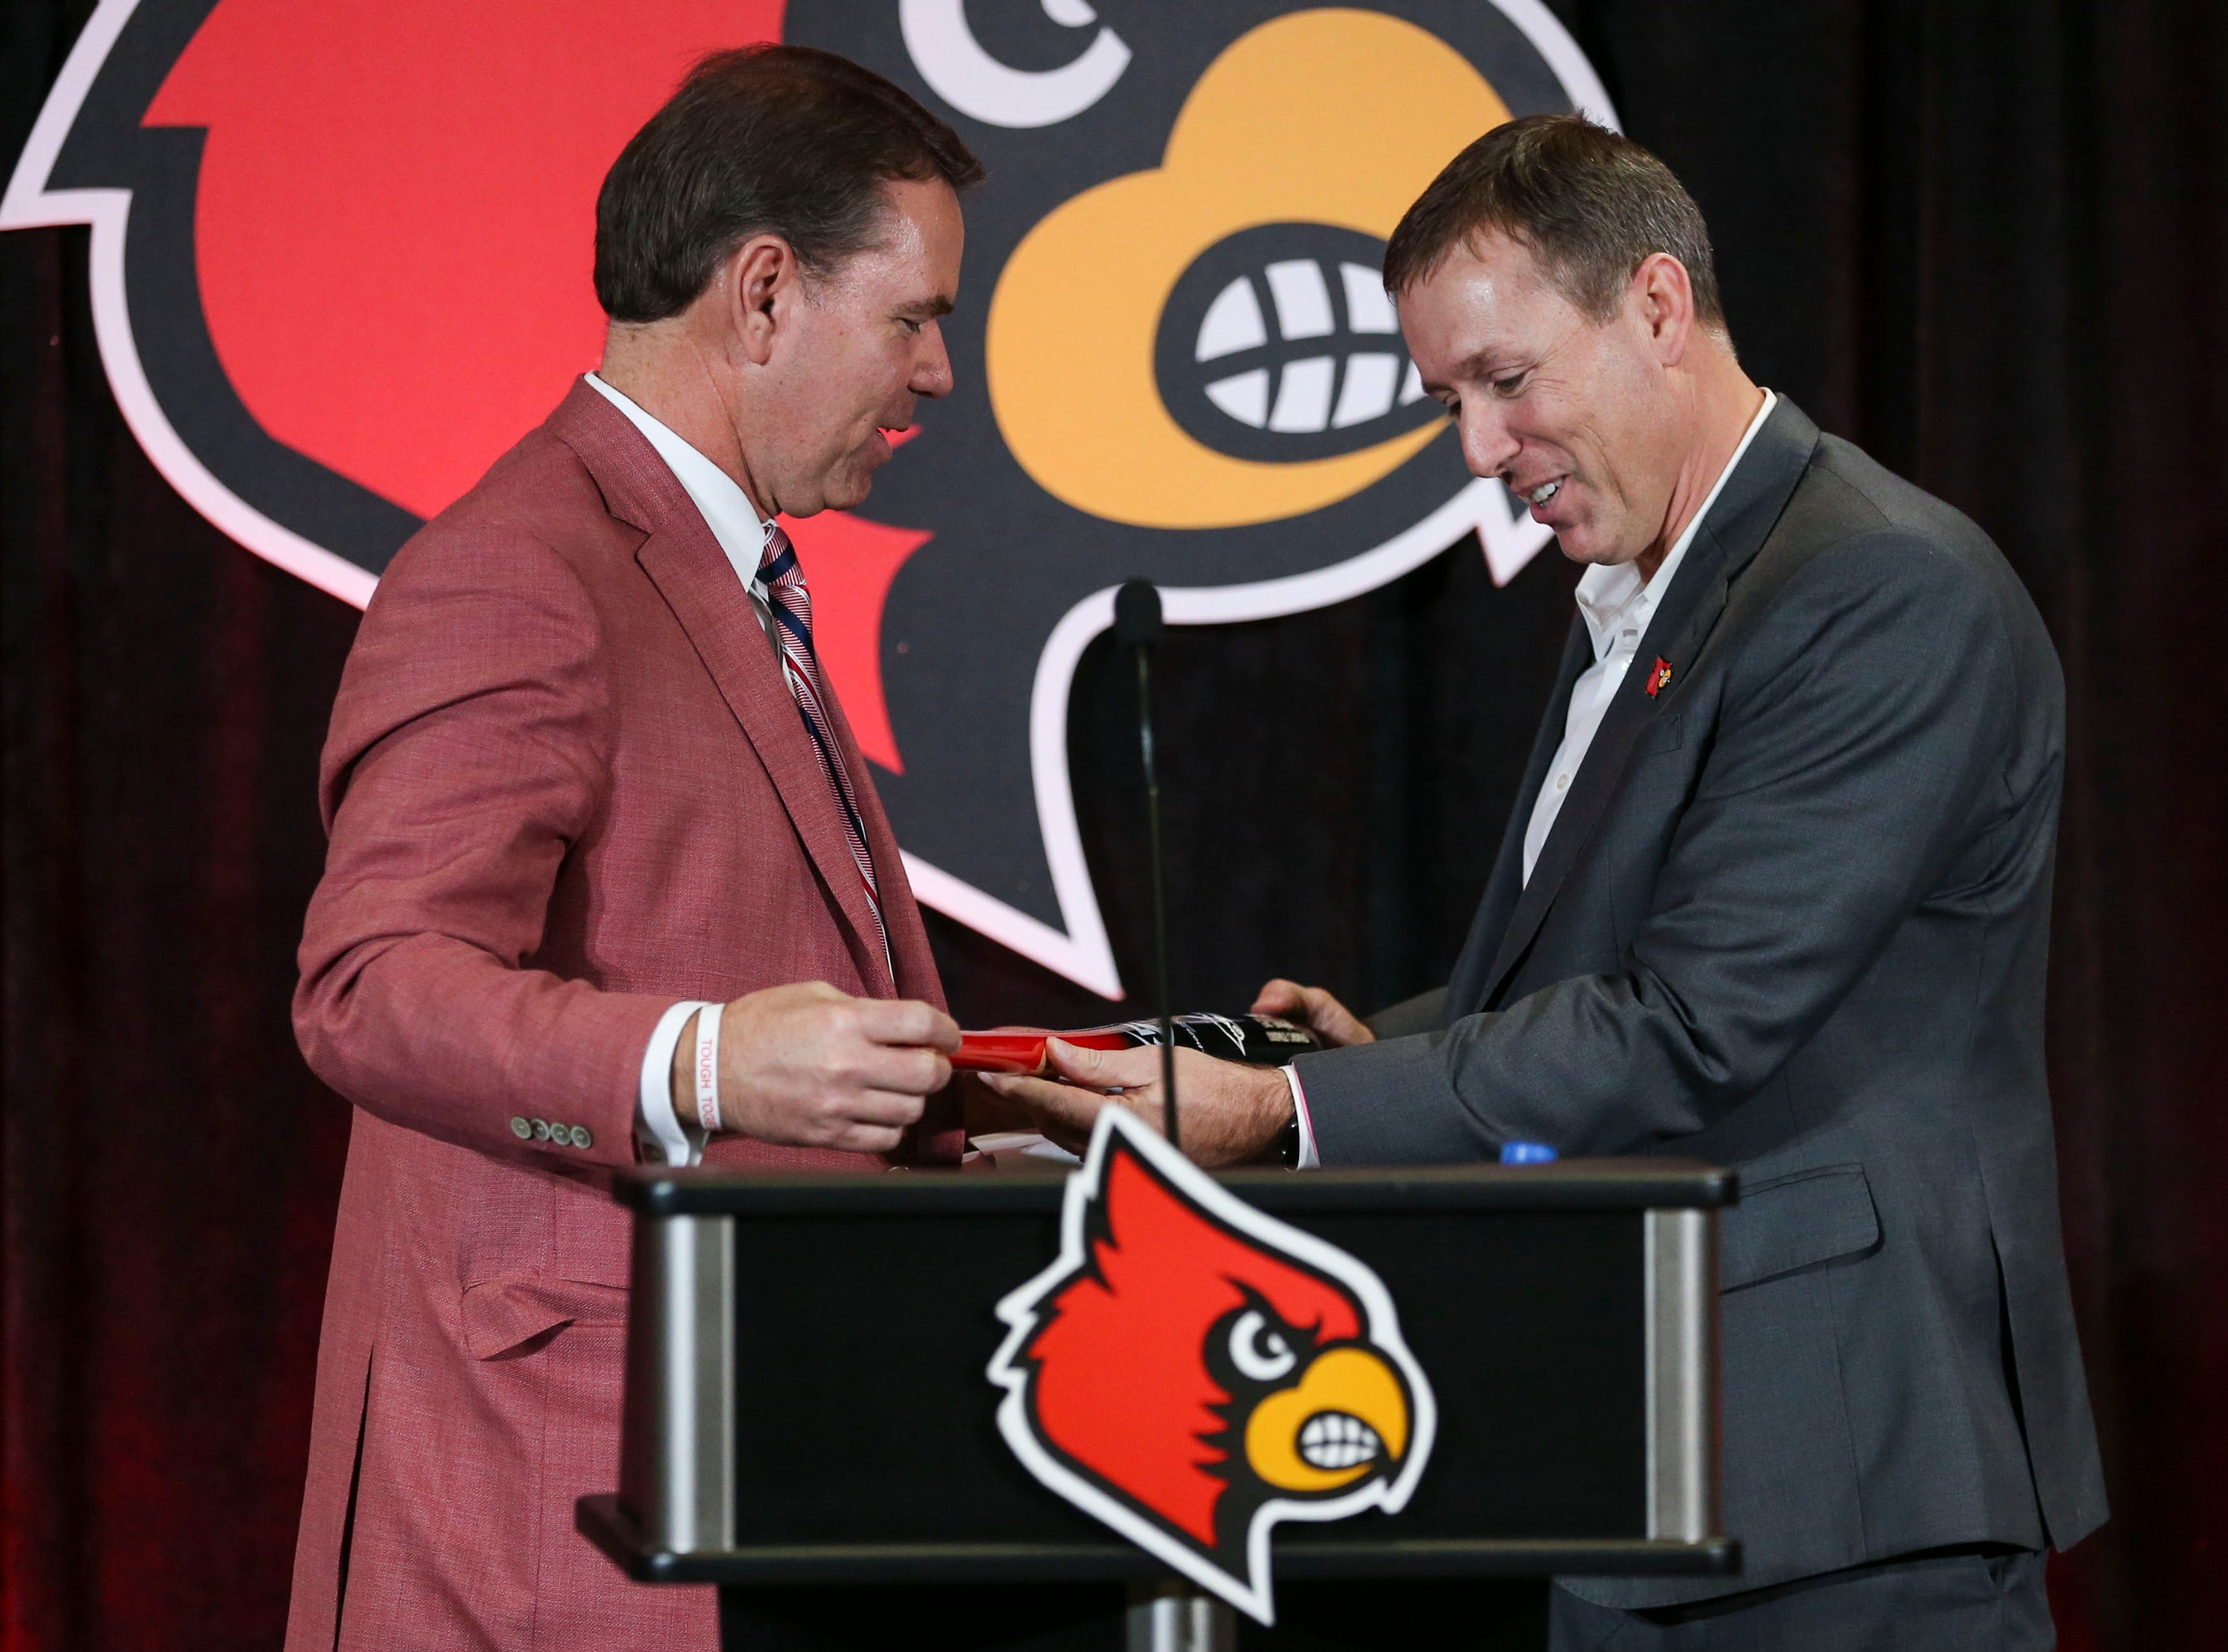 Louisville athletic director Vince Tyra gives new football coach Scott Satterfield a Louisville slugger bat as a welcome present during the new coach's introduction. Satterfield, who coached Appalachian State to one of best FBS records in the past four years, was hired Dec. 4, 2018 to take over the Louisville football program.